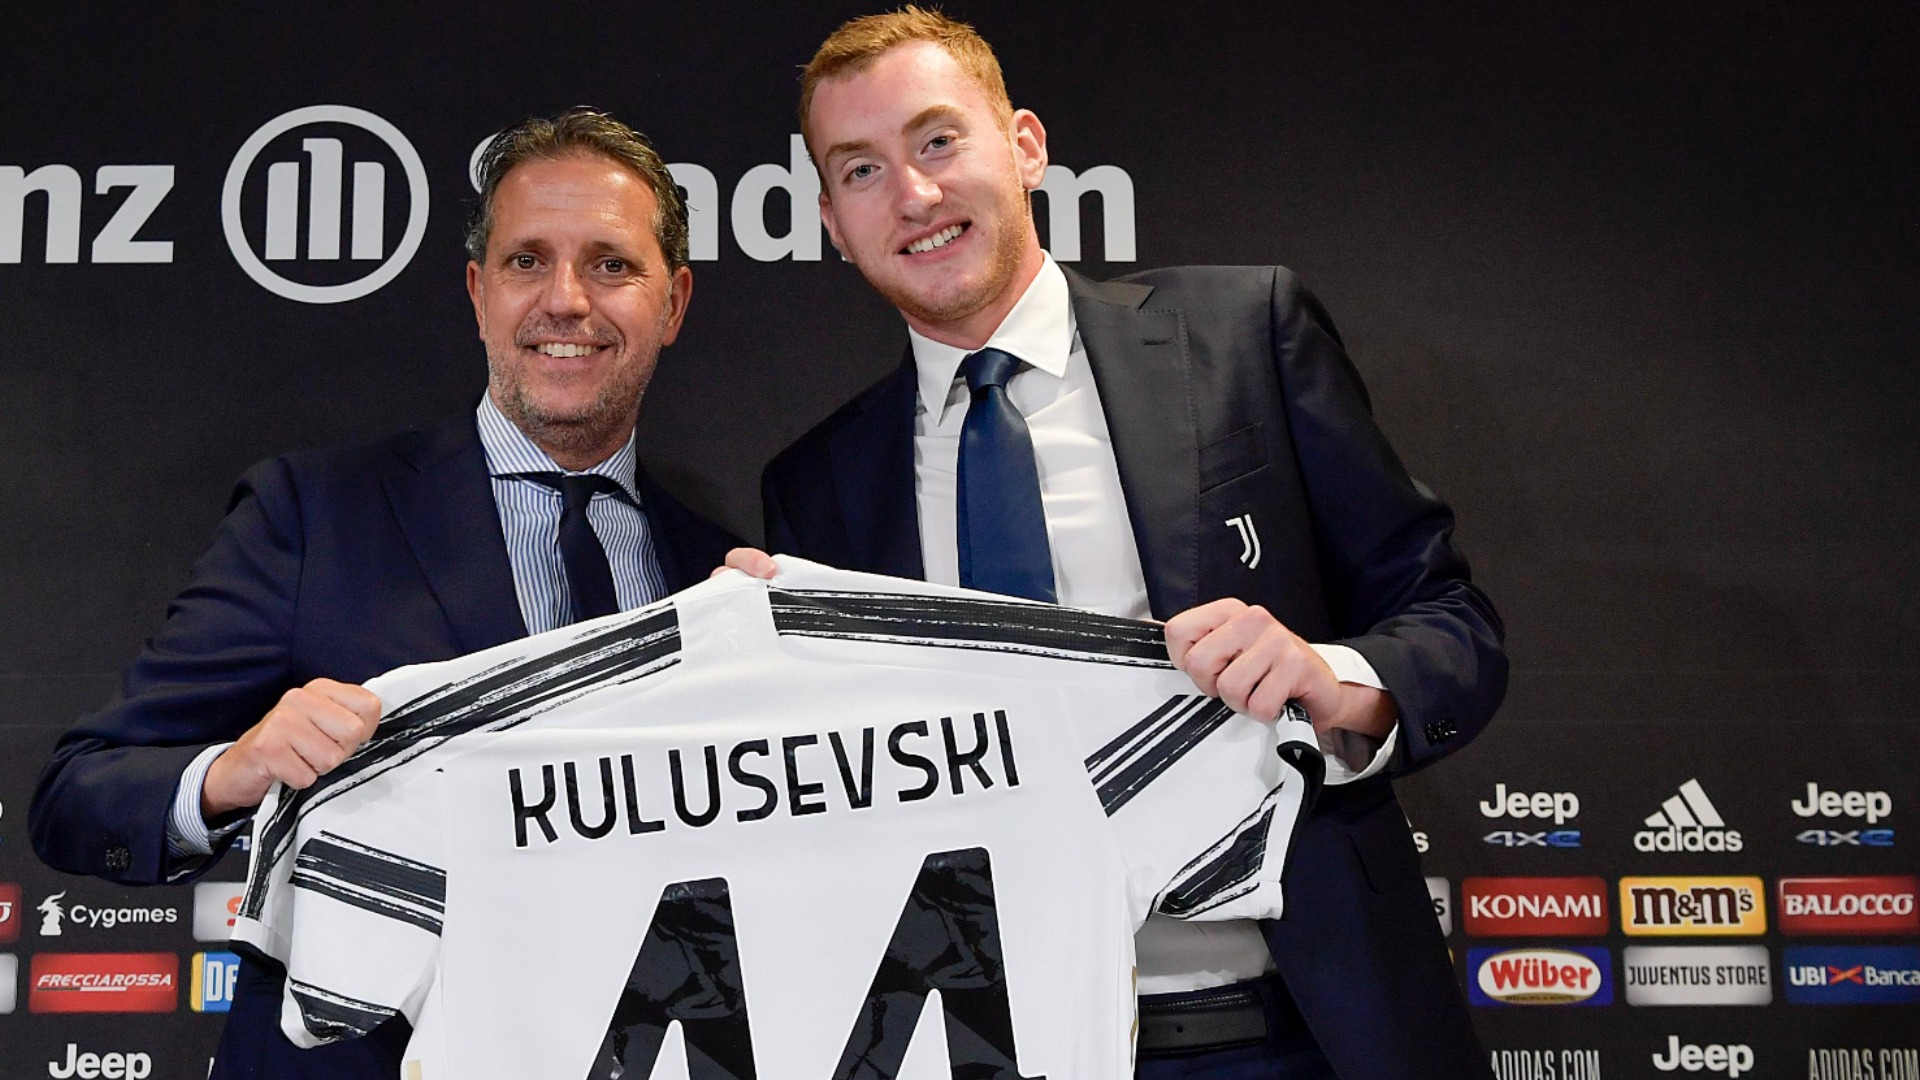 Next Generation – Kulusevski's youth coaches outline the perfect pupil as Juventus bow awaits